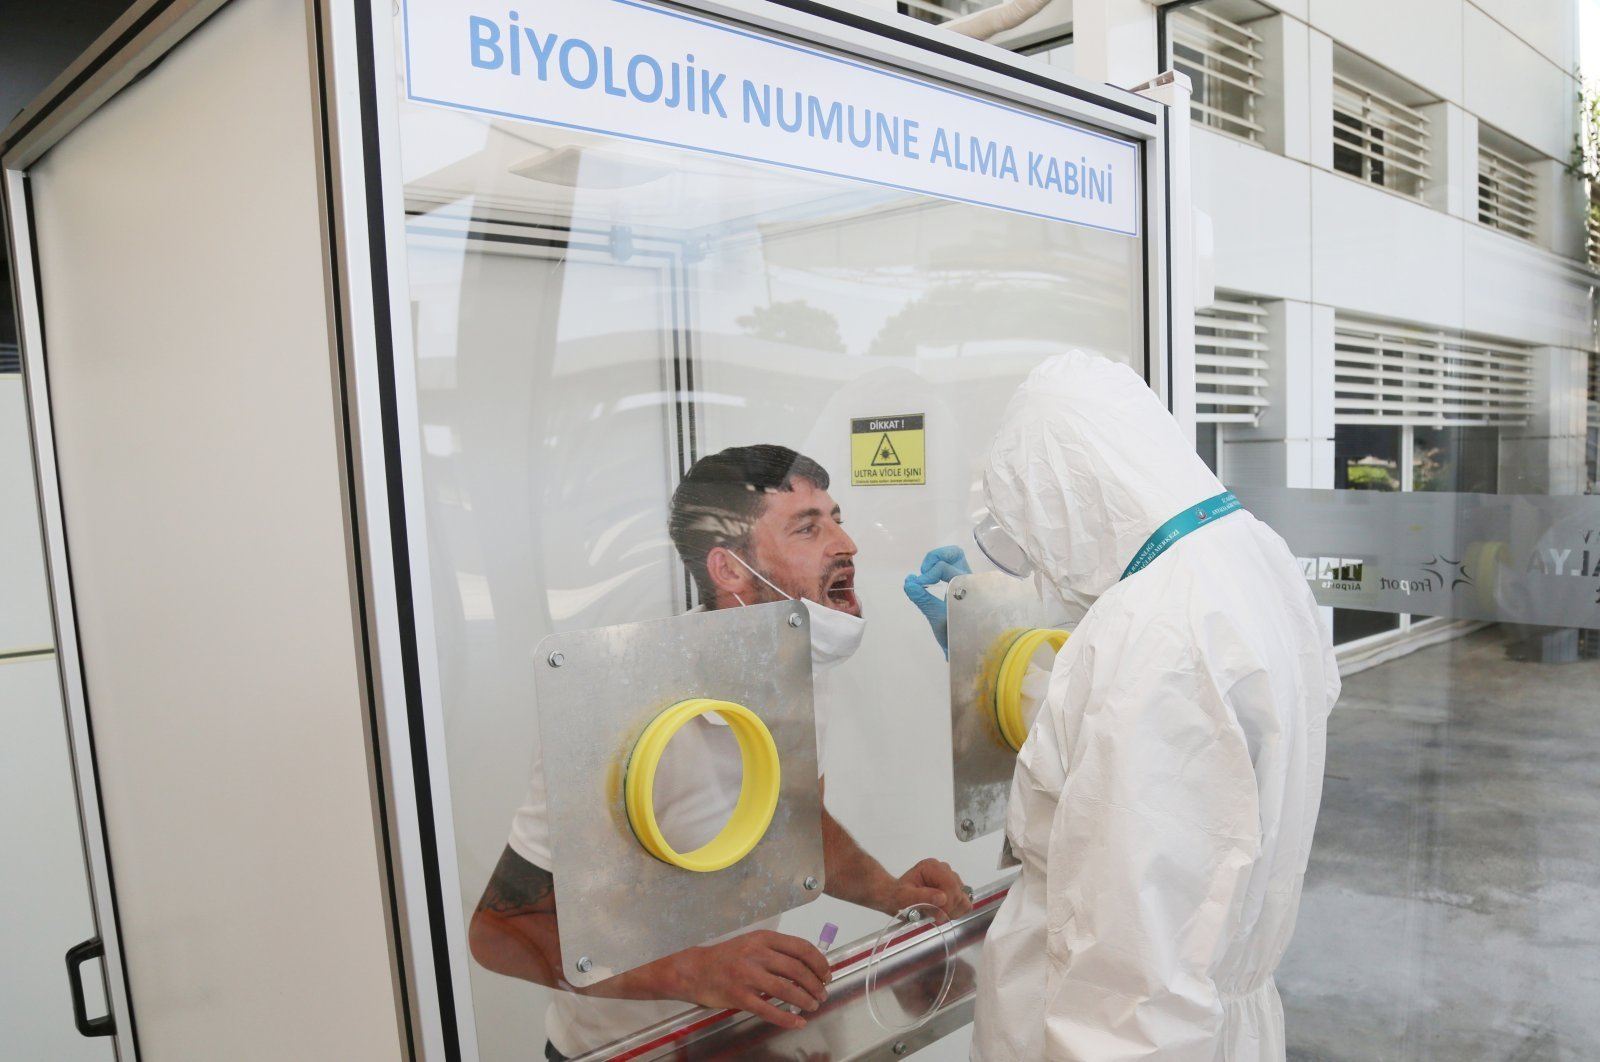 A man is tested for COVID-19 at an airport in Antalya, southern Turkey, Aug. 30, 2020. (DHA Photo)